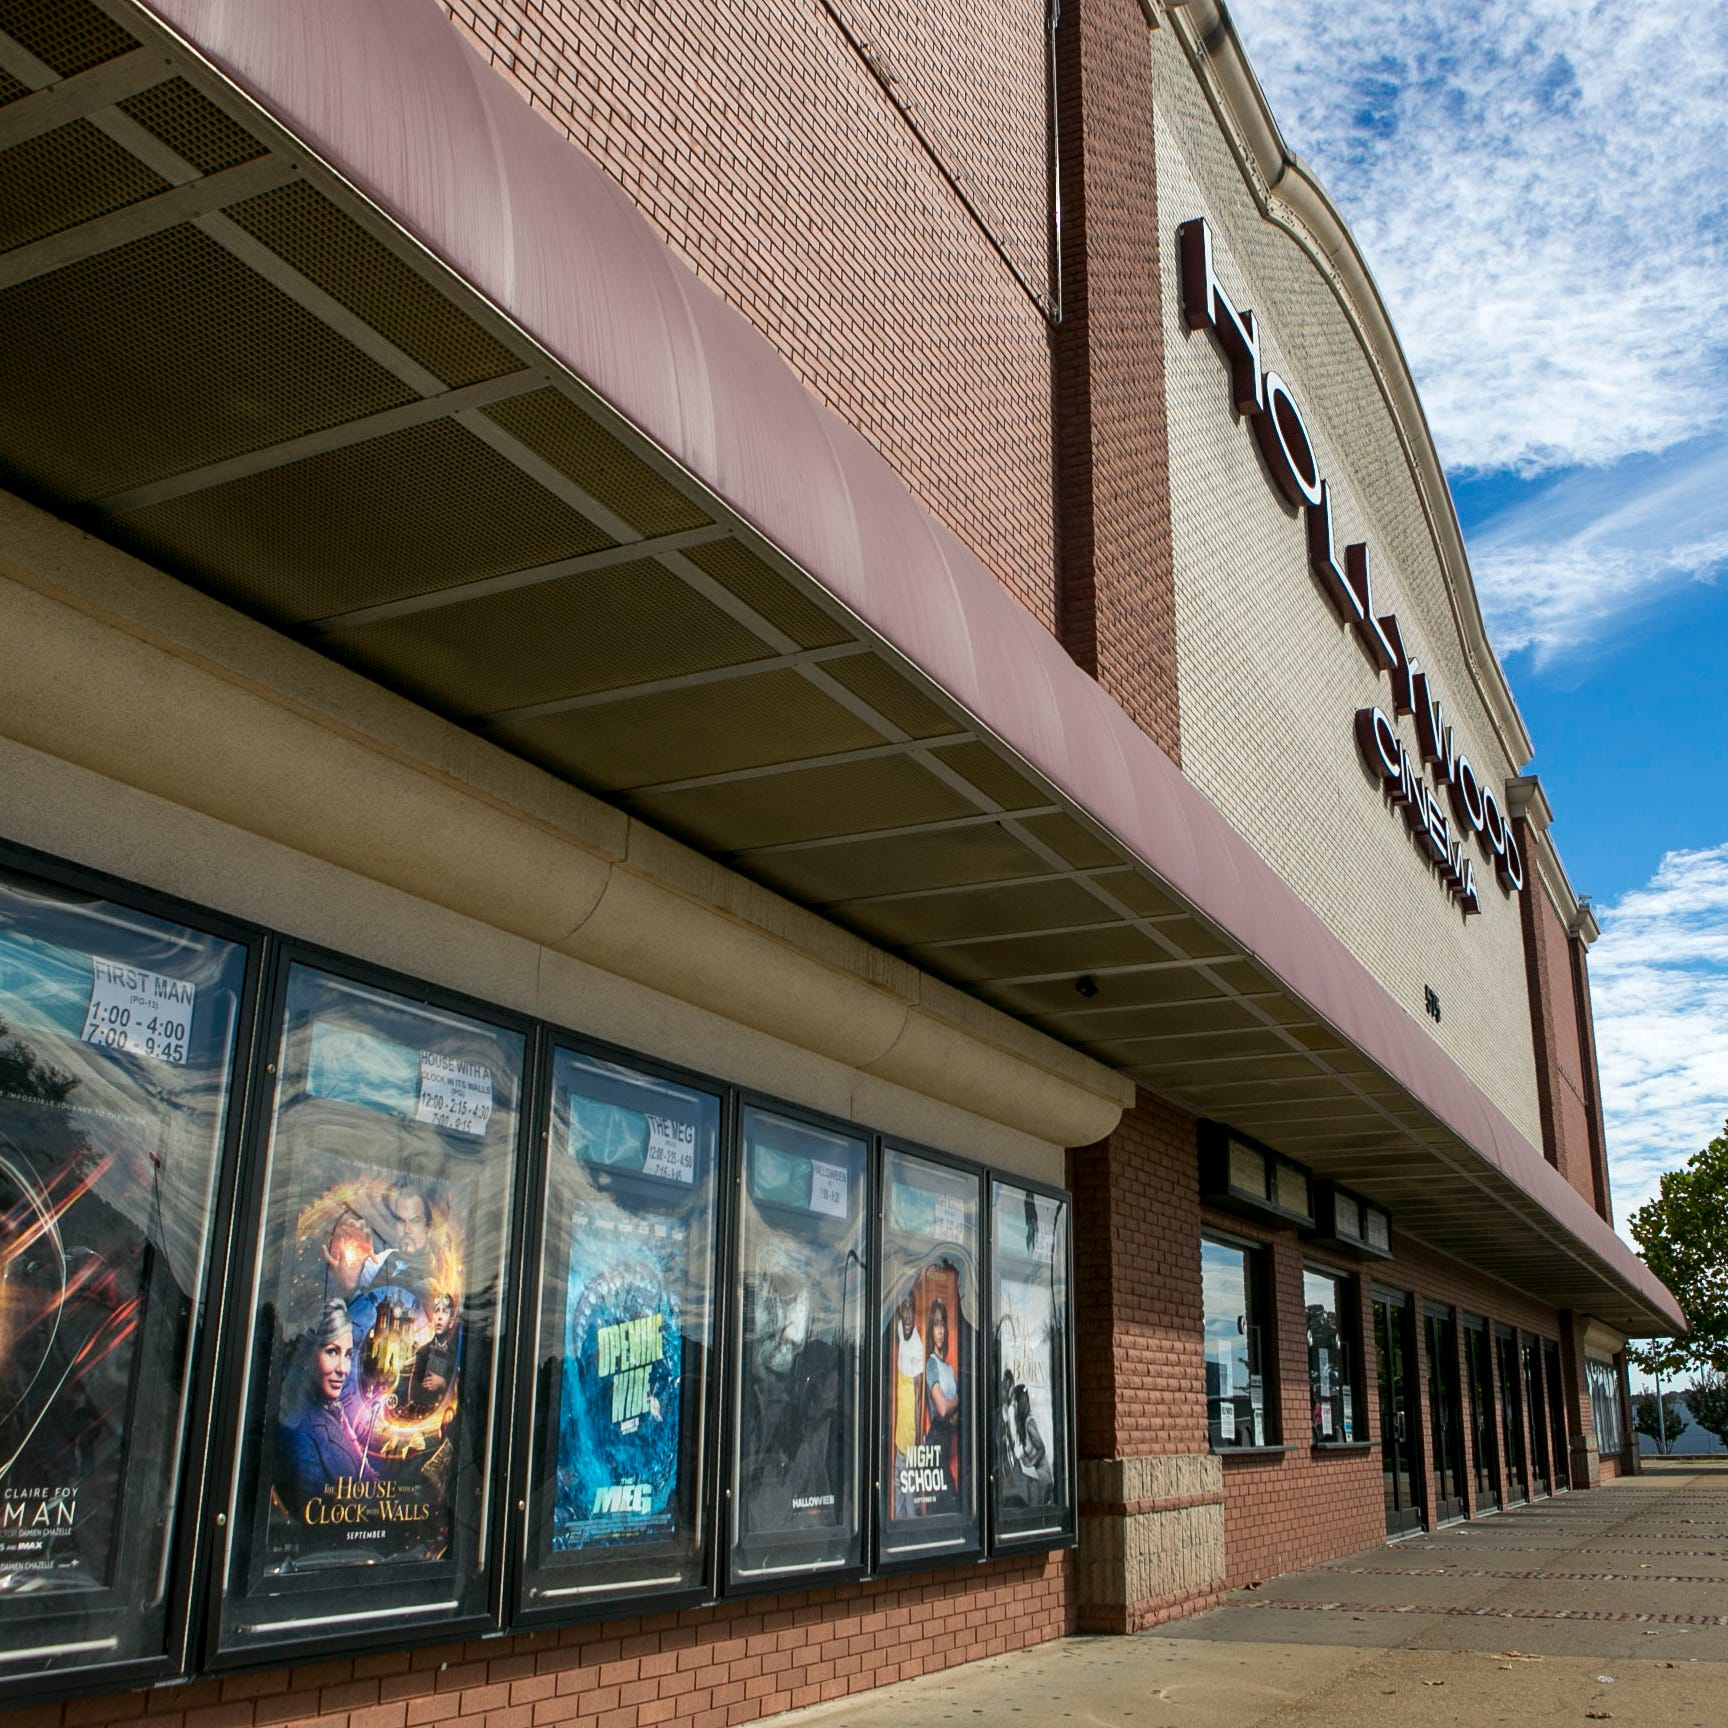 Renovations, new staff coming to Jackson theater